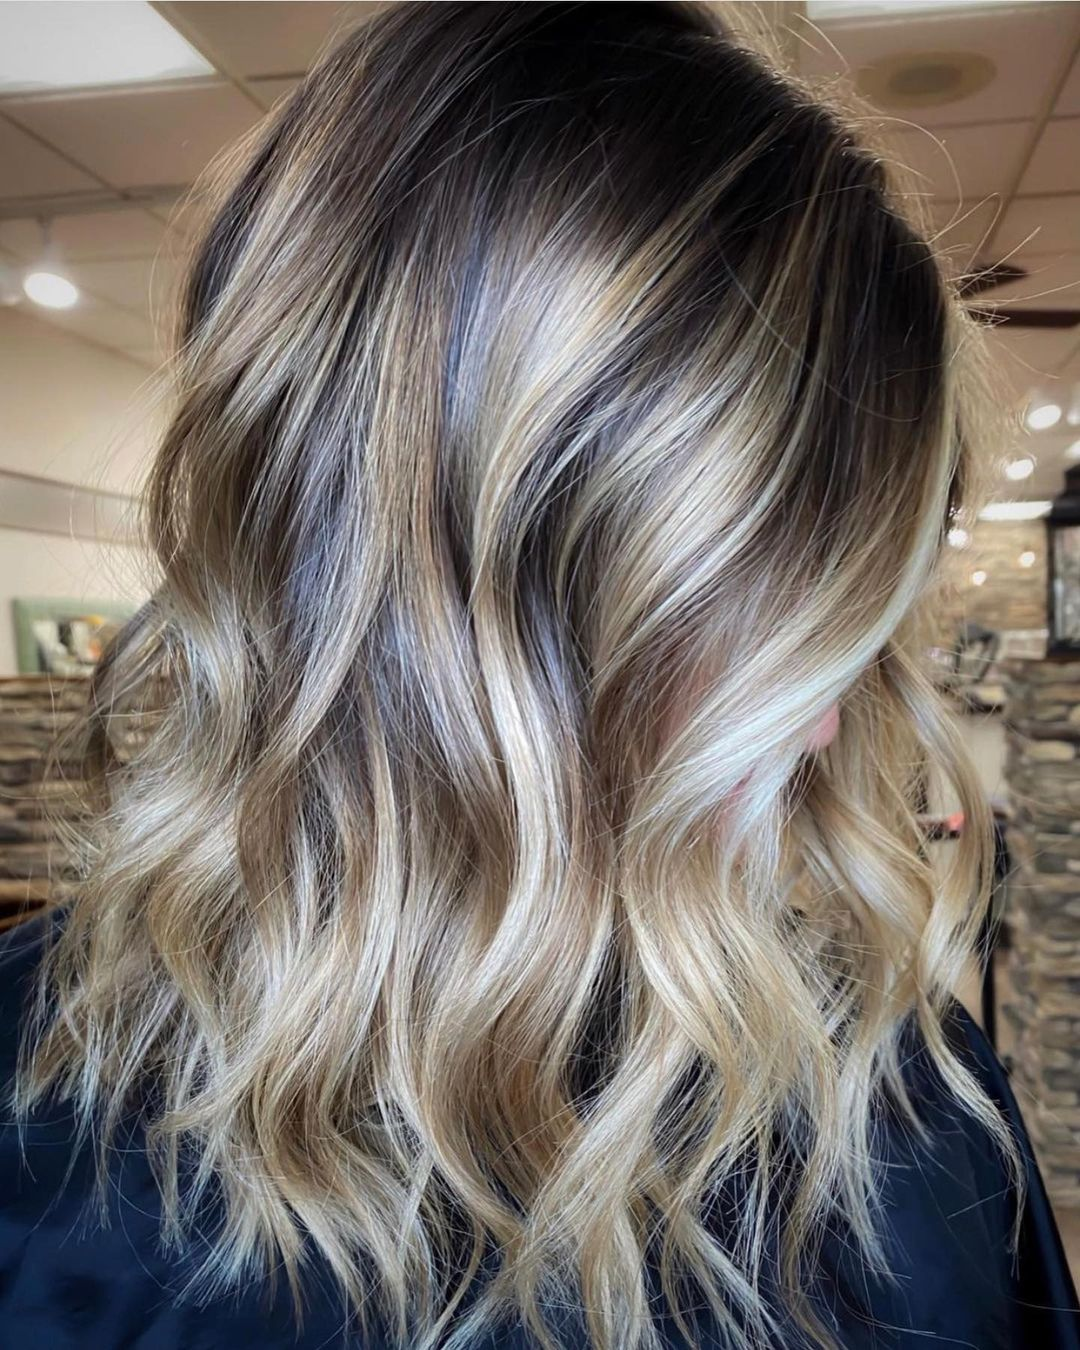 Silver and Blonde Balayage on Brown Hair